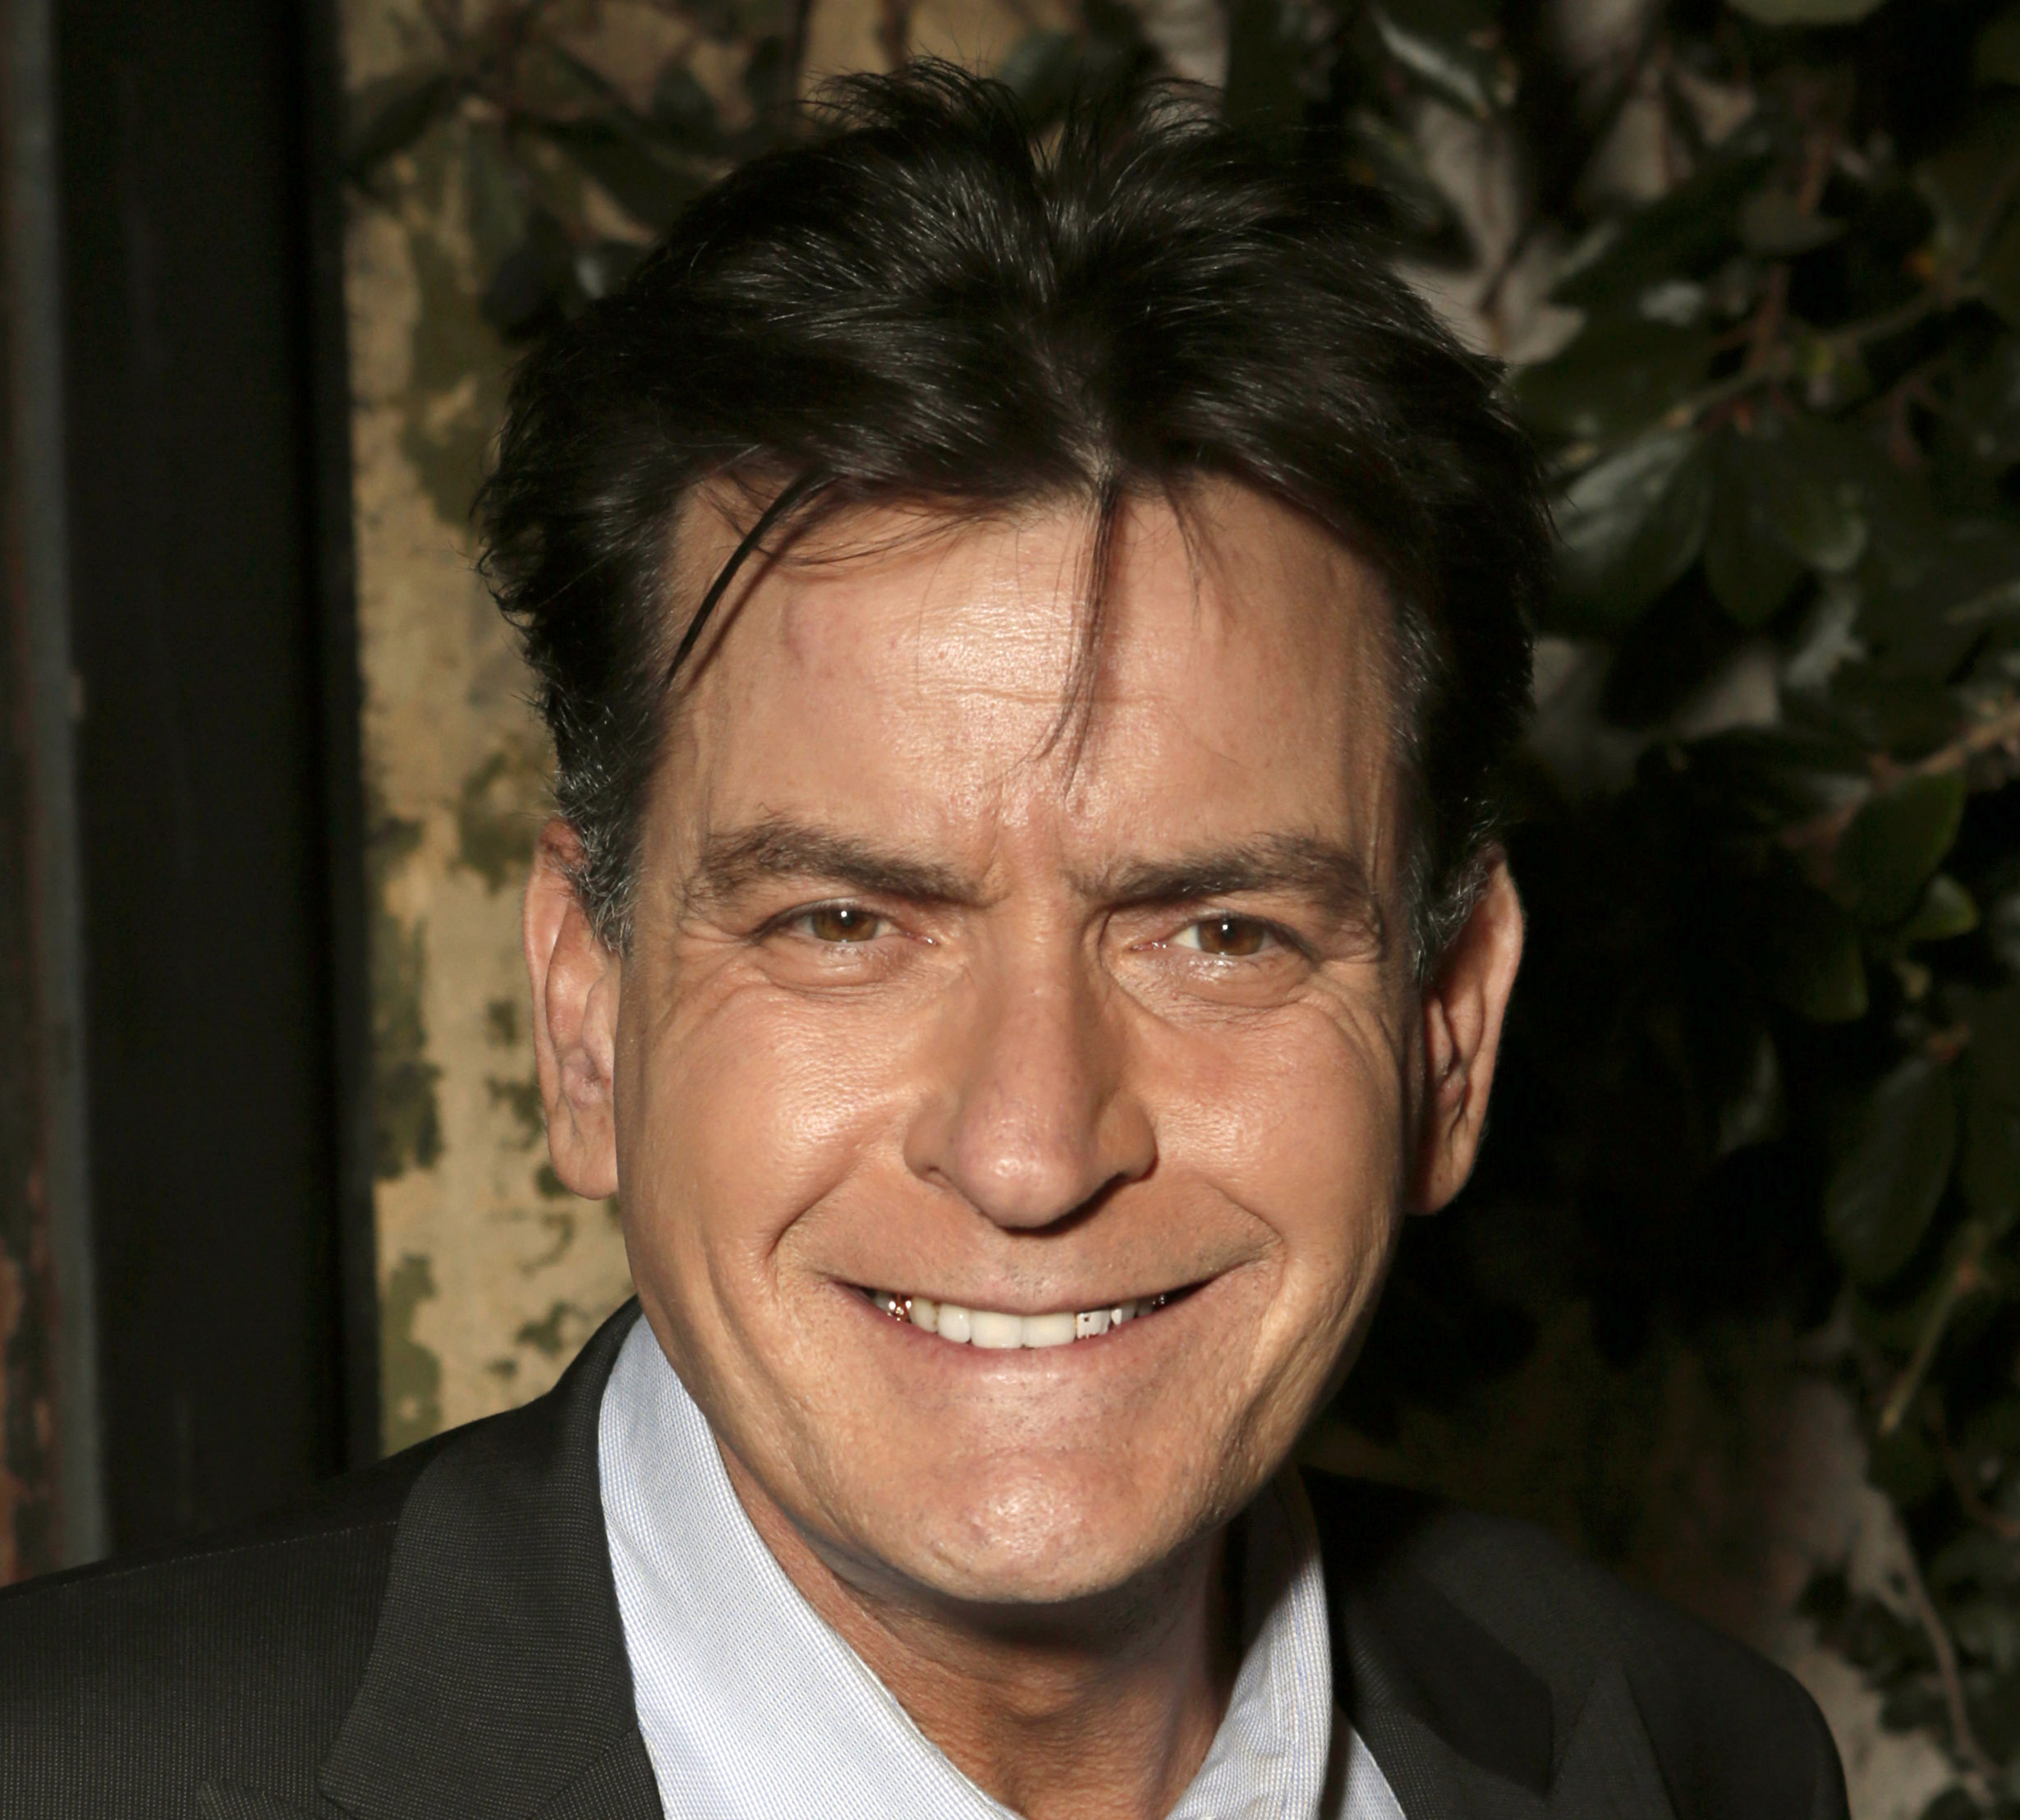 NBC: Charlie Sheen to make 'revealing' personal announcement on 'Today' show